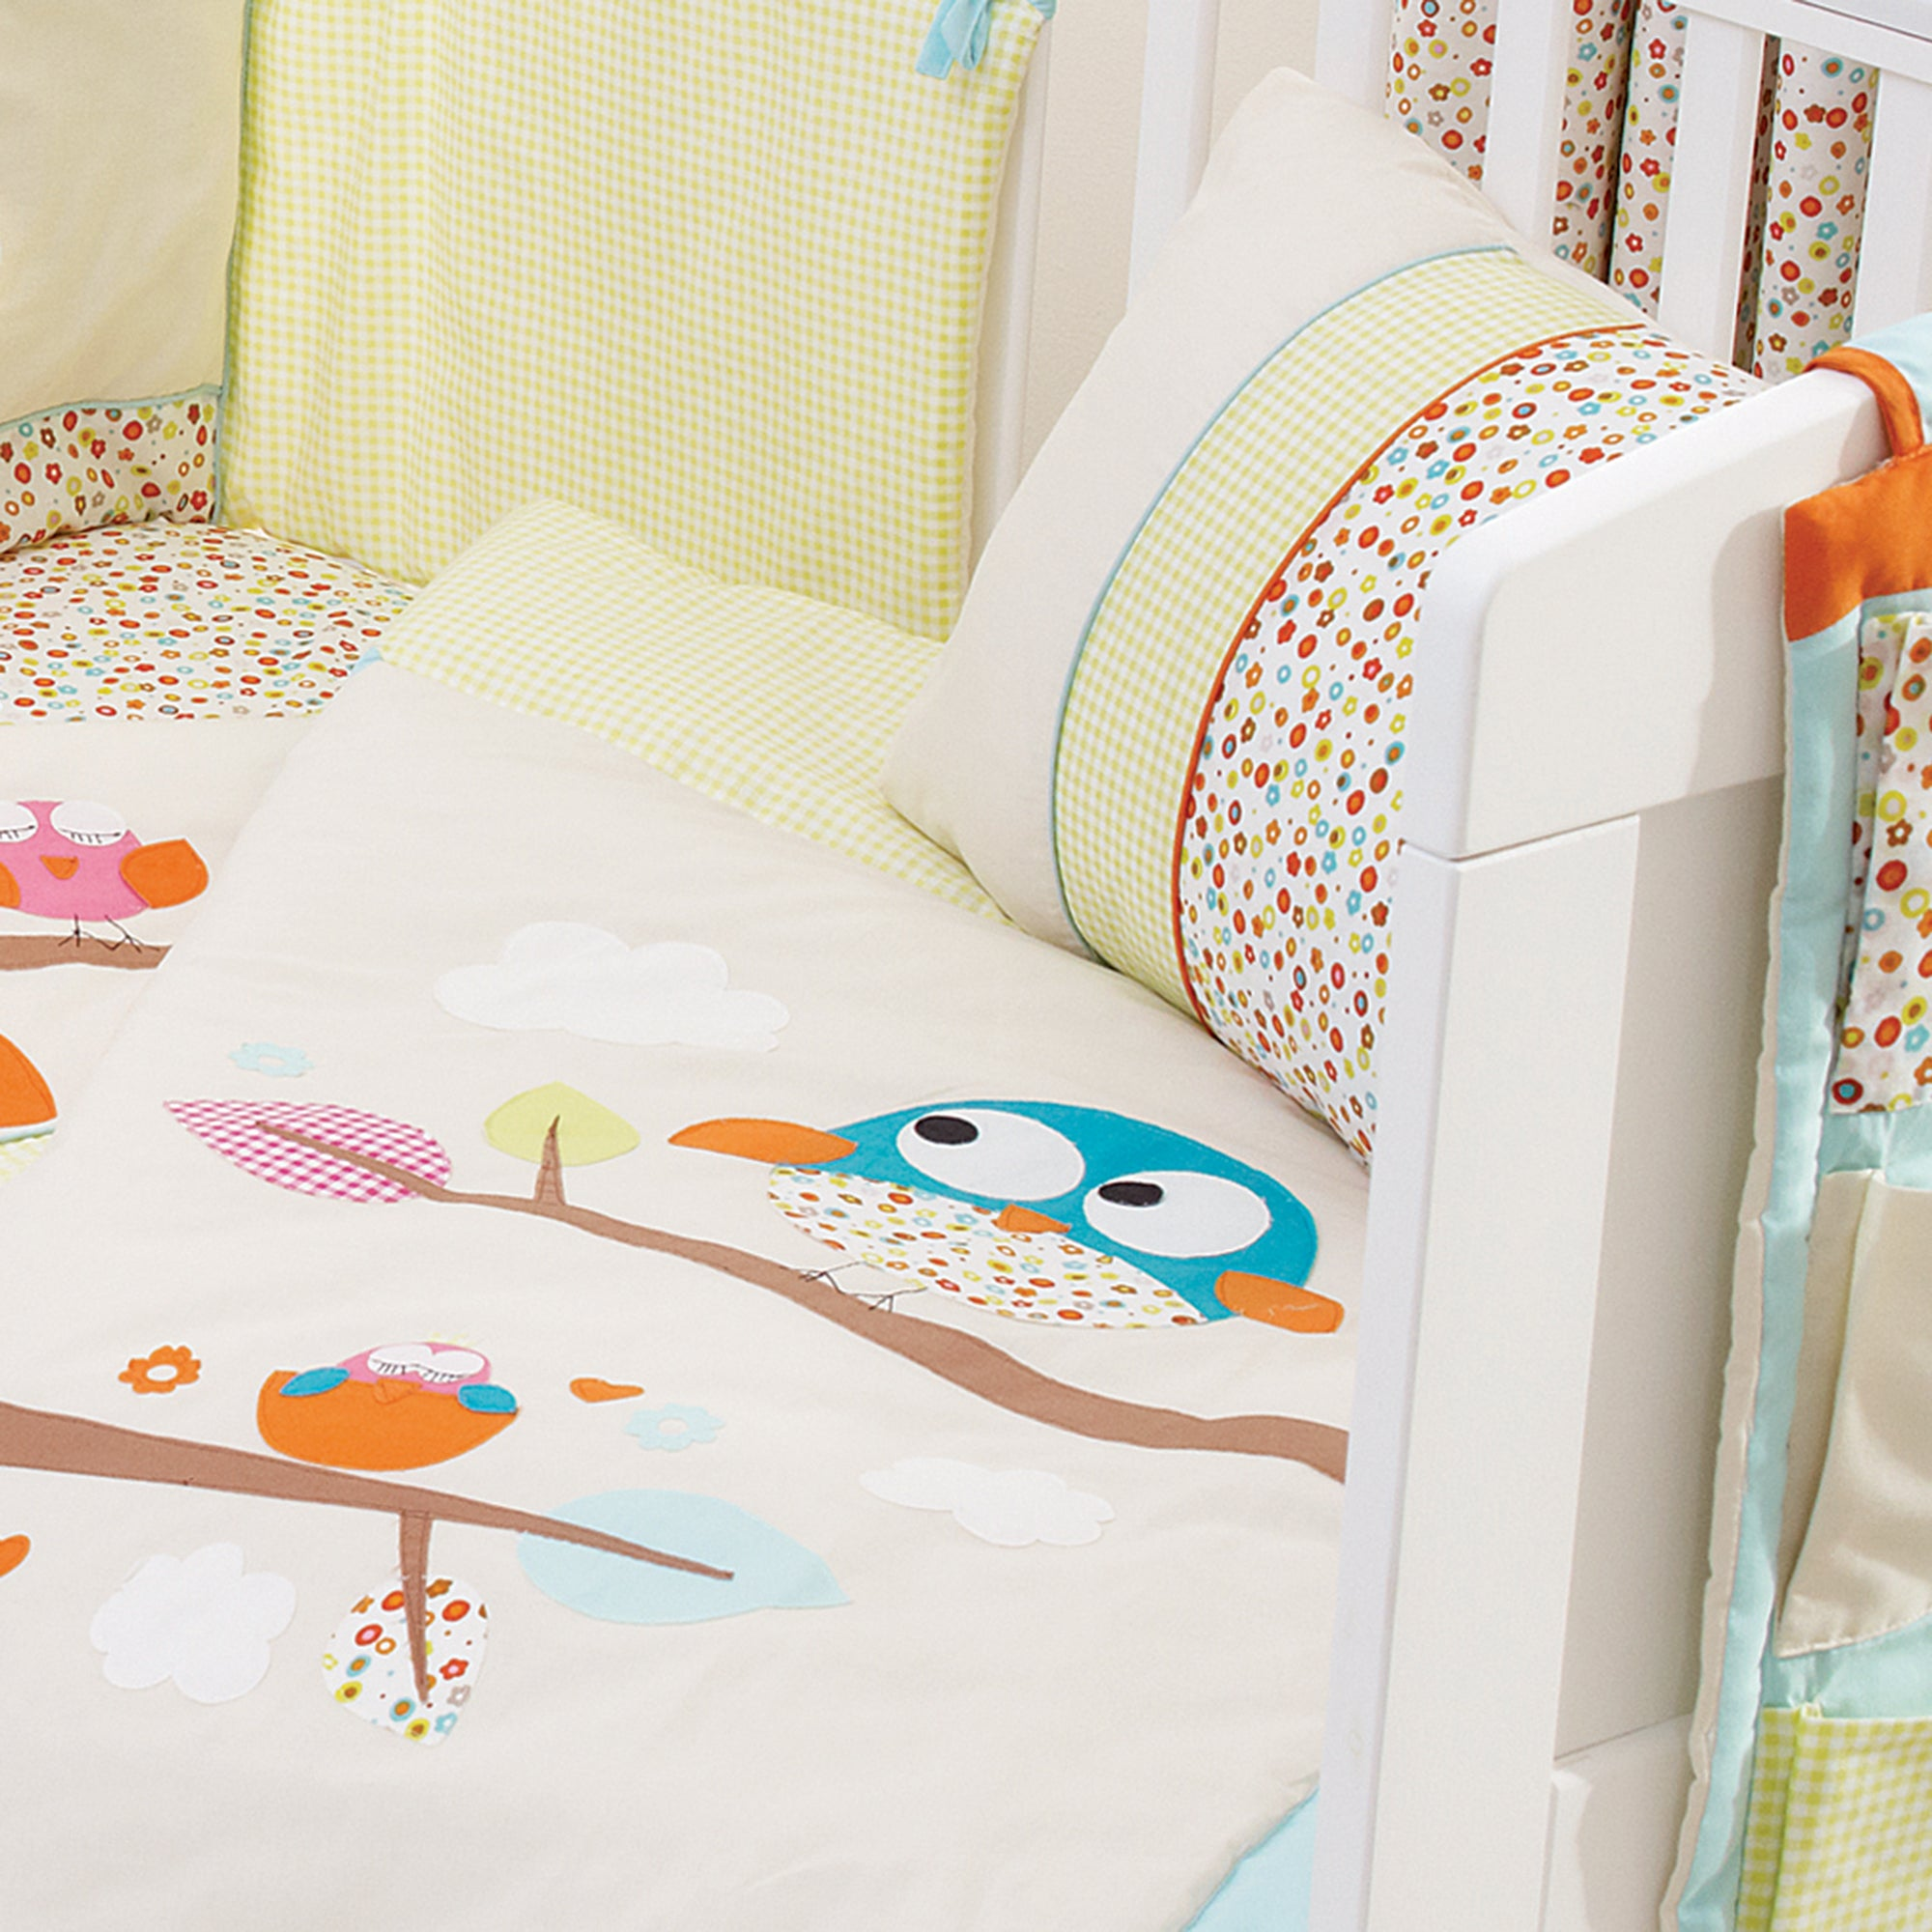 Kids Sleepy Owl Collection Pillowcase